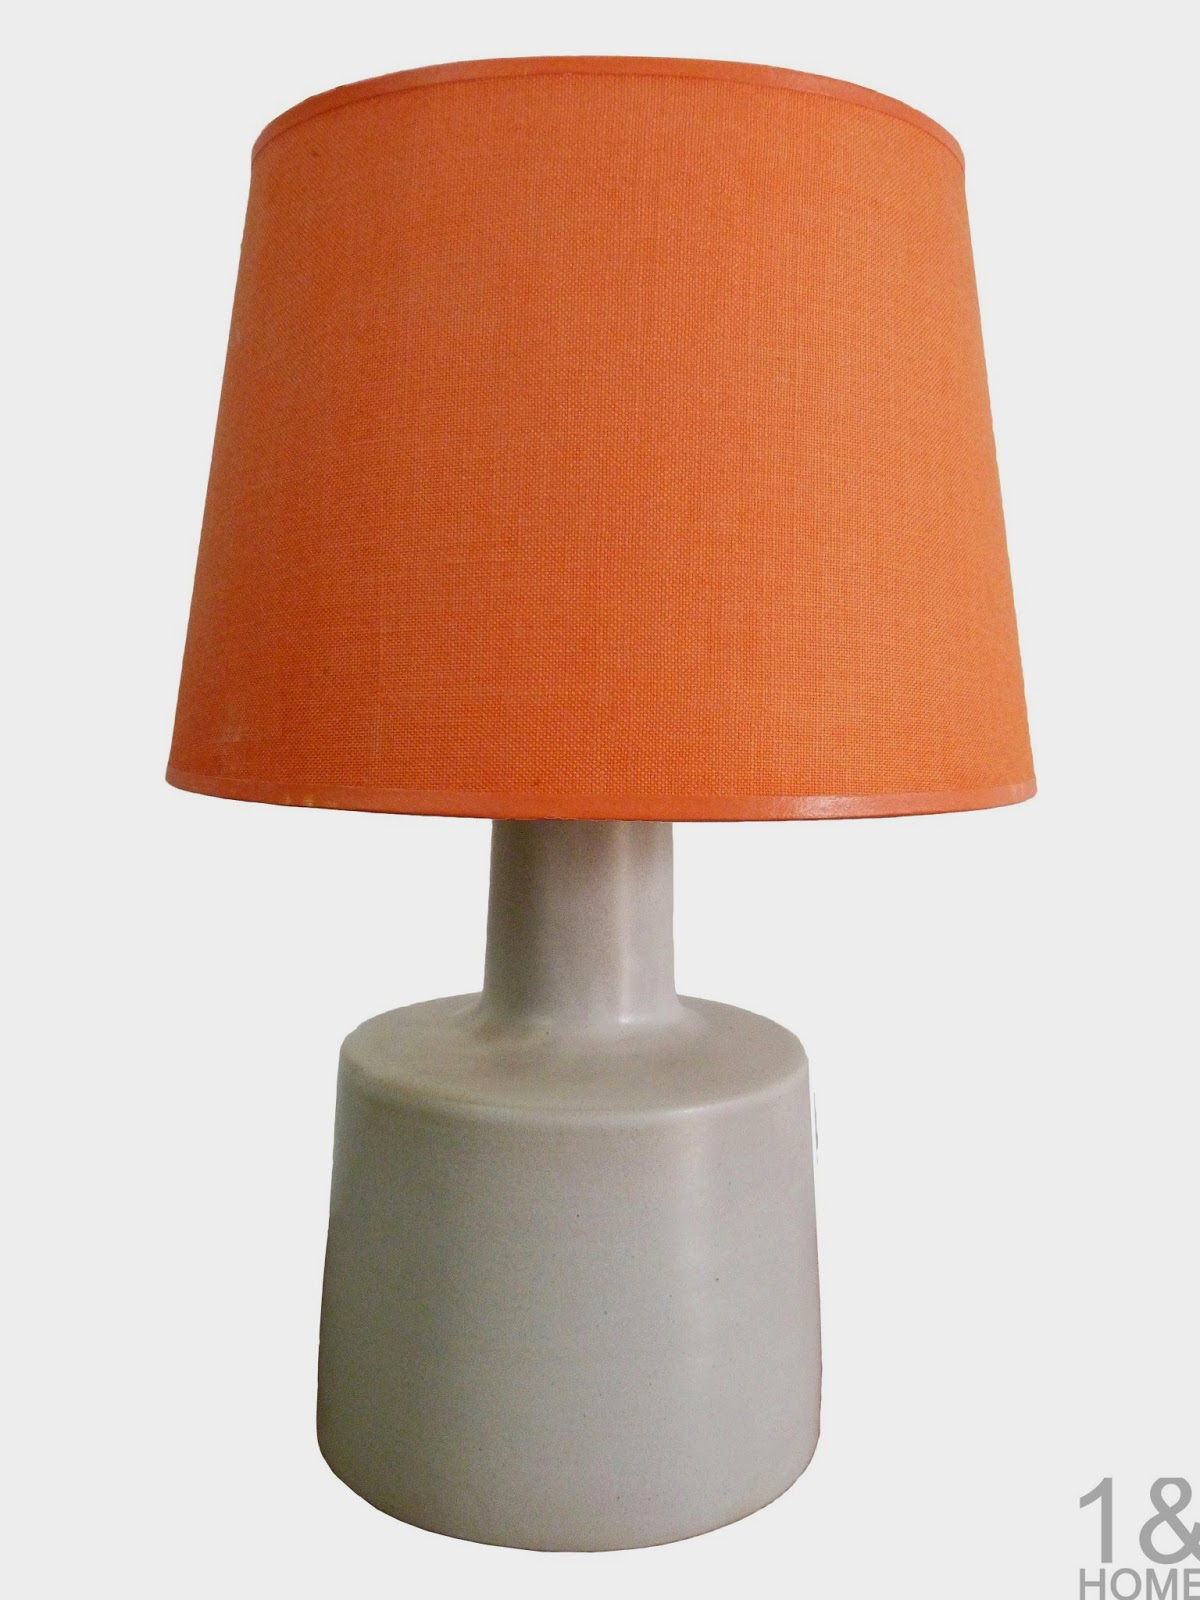 Gordon Martz for Marshall Studios grey ceramic table lamp